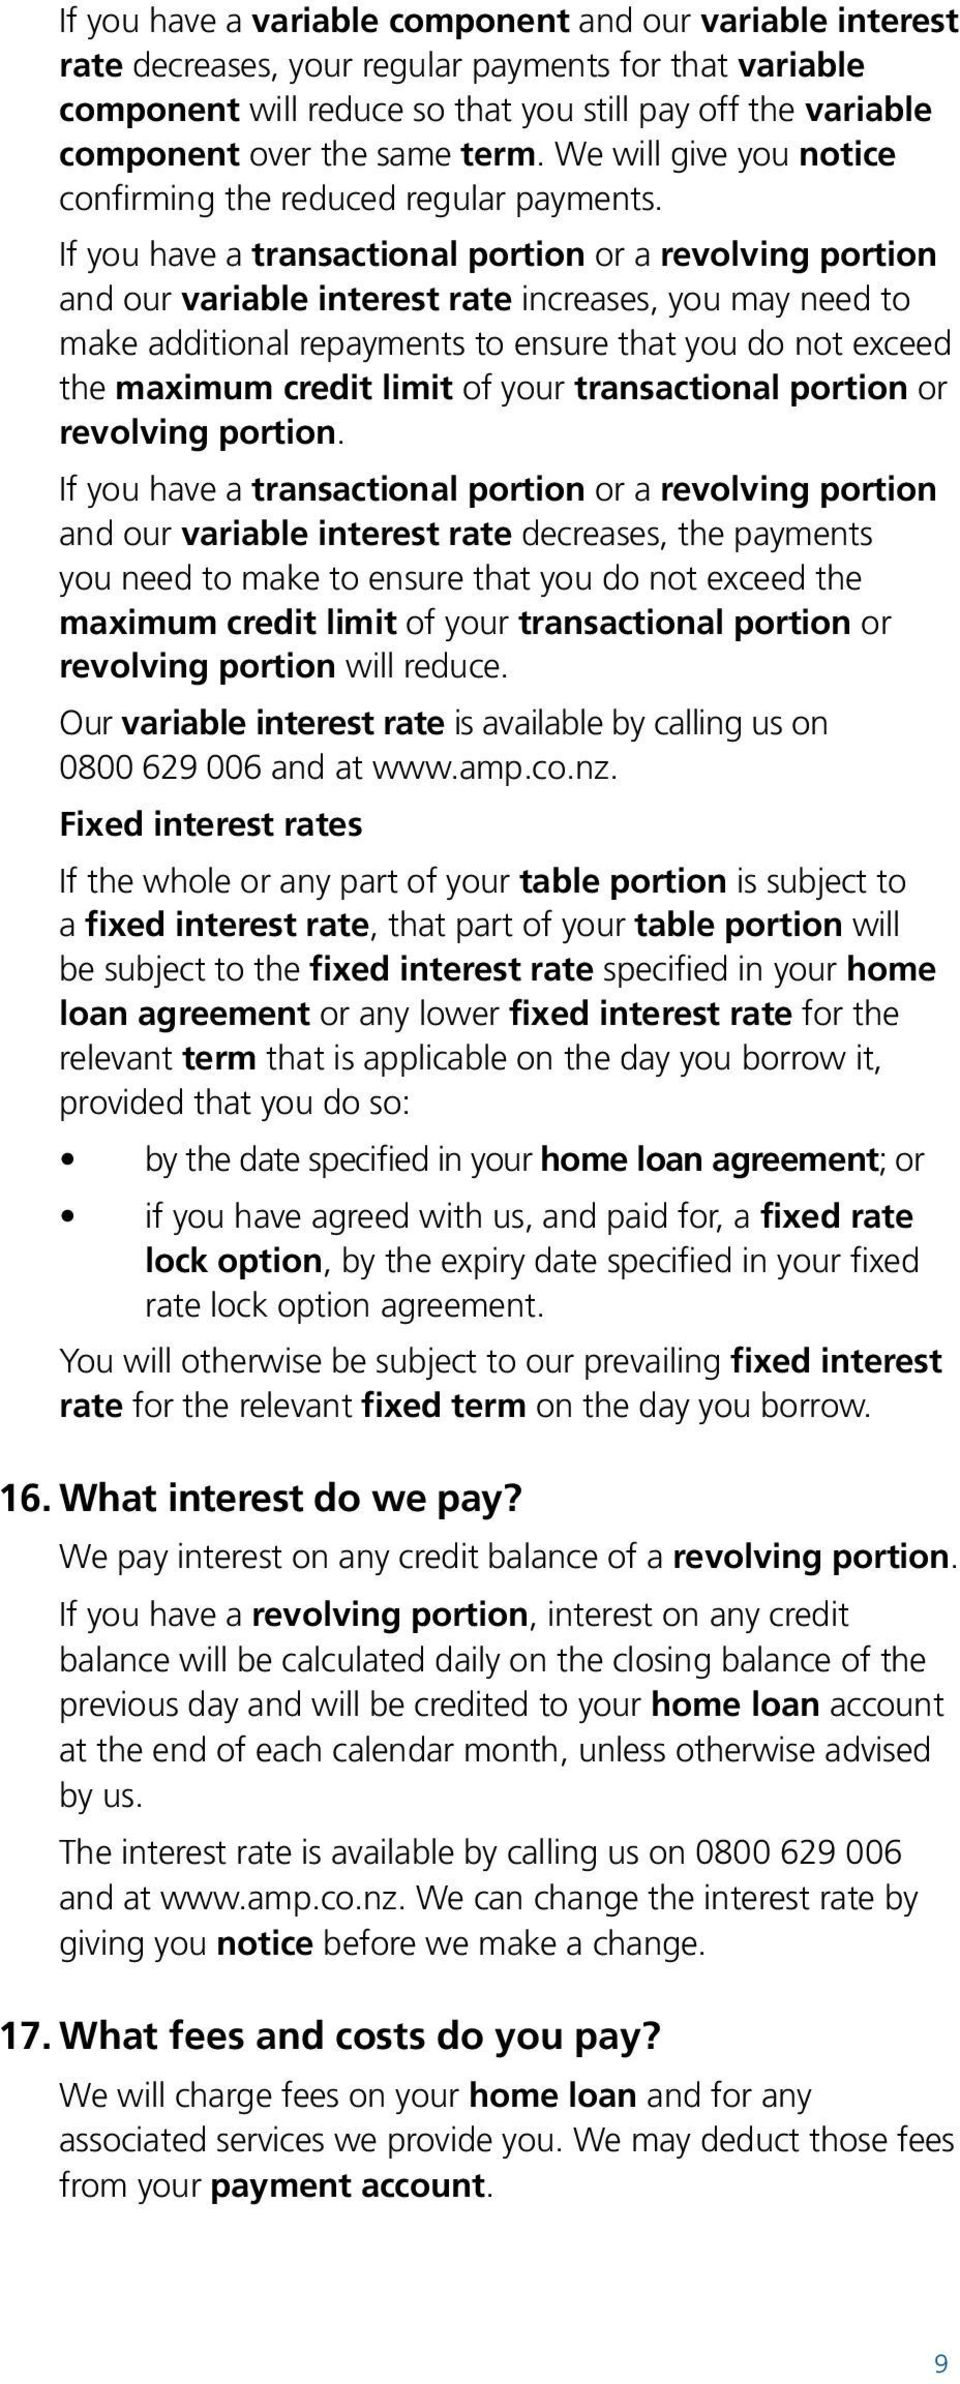 If you have a transactional portion or a revolving portion and our variable interest rate increases, you may need to make additional repayments to ensure that you do not exceed the maximum credit